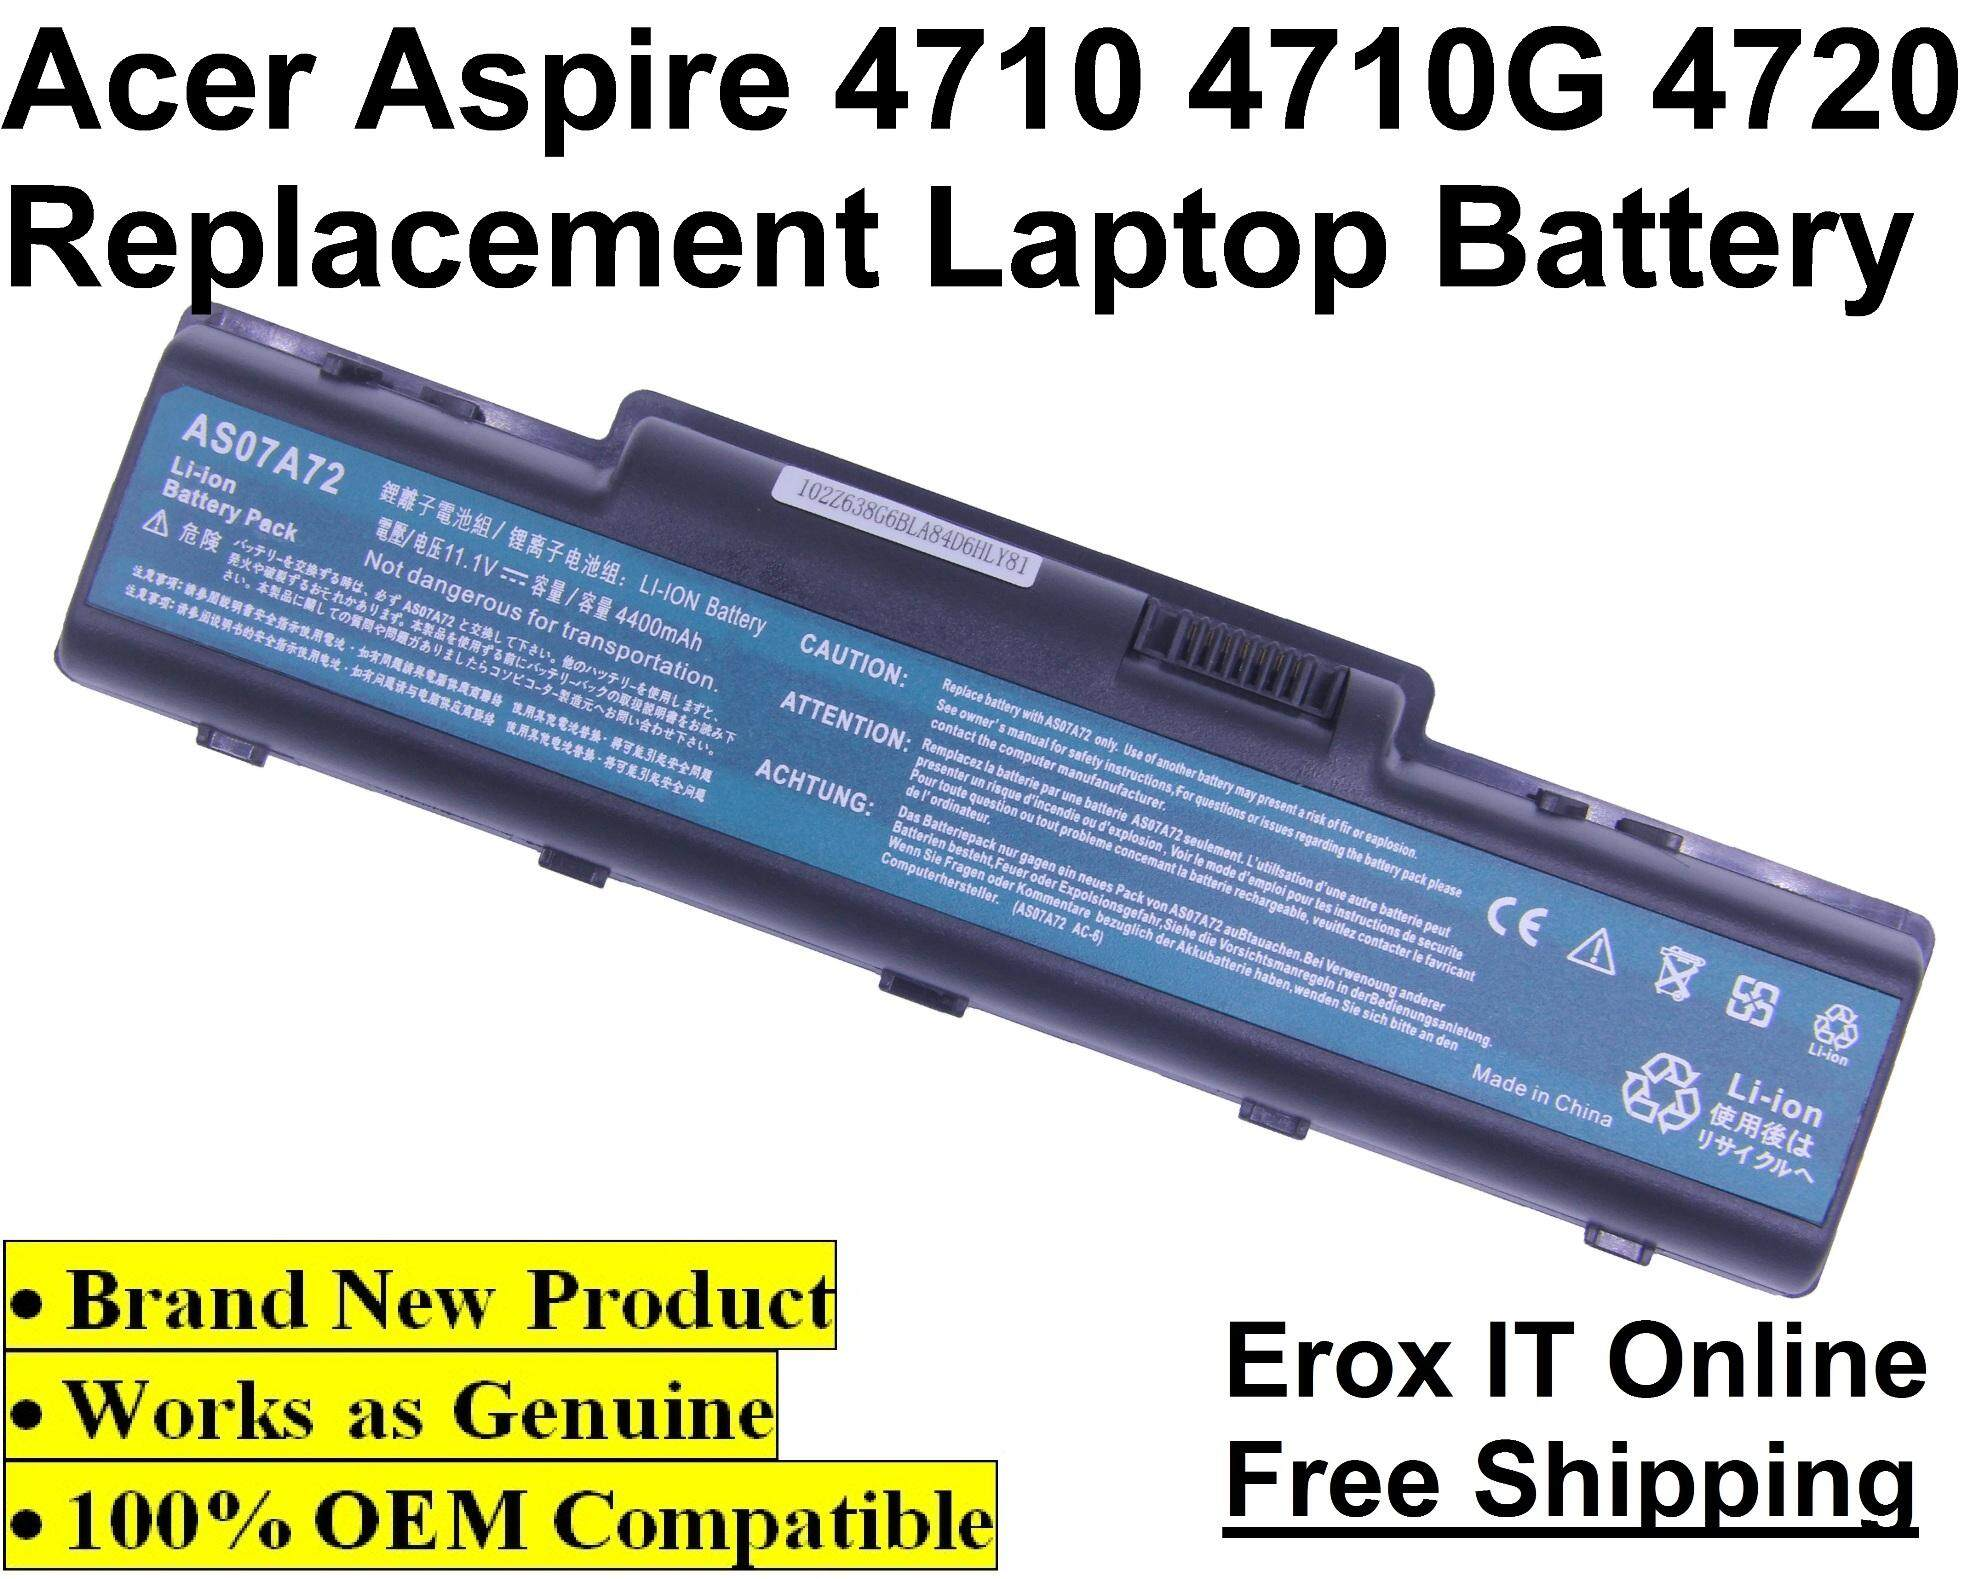 Acer Aspire 4530 Series Laptop Battery Malaysia